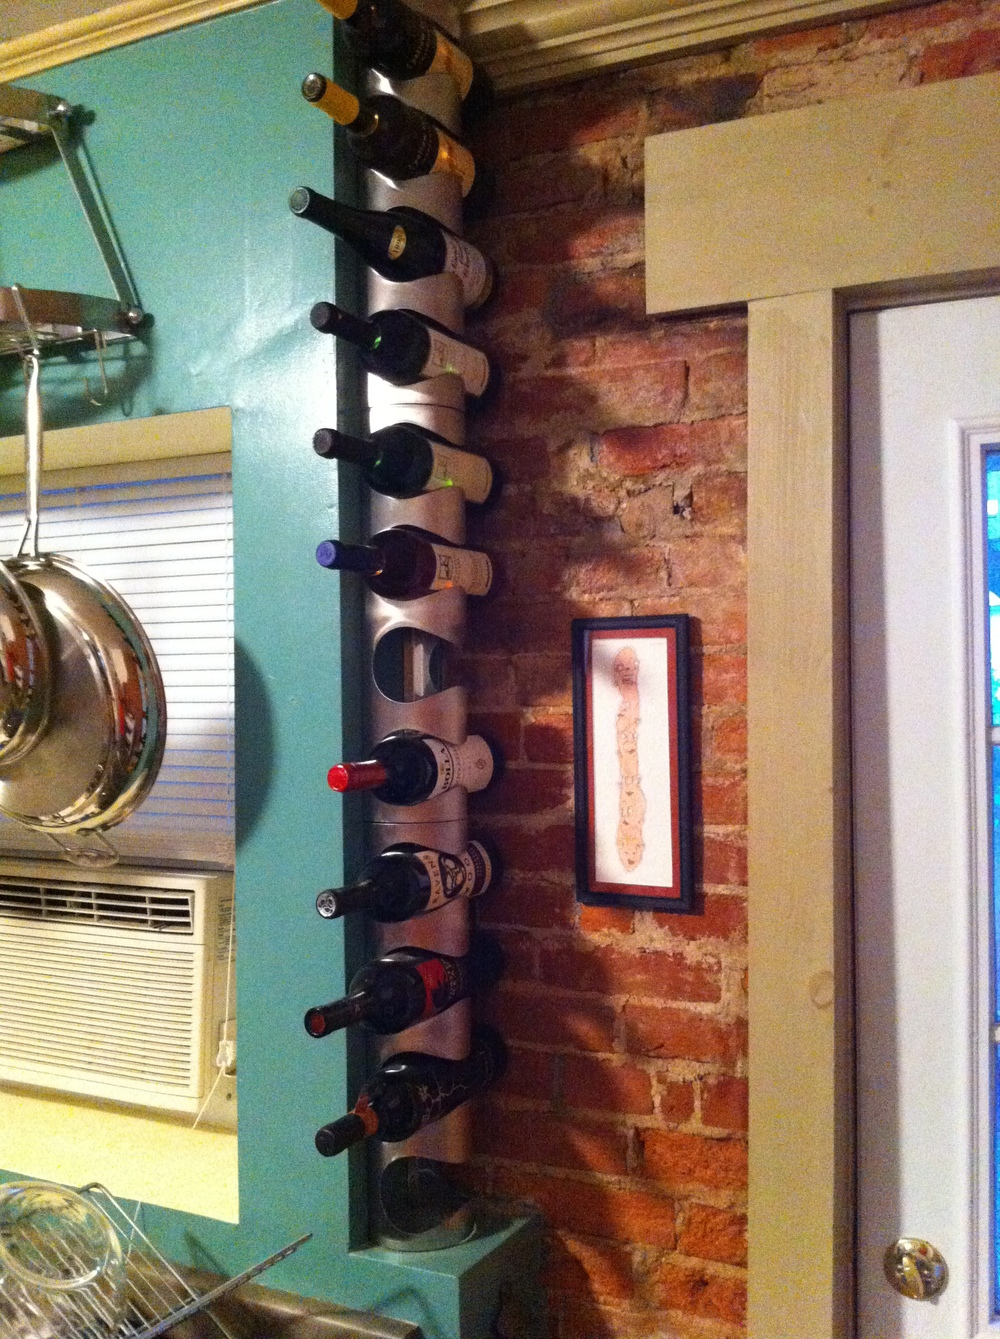 Eric uses all the vertical space in the kitchen with a wall mounted pots and pans holder, knife magnet, and stacked wine rack.